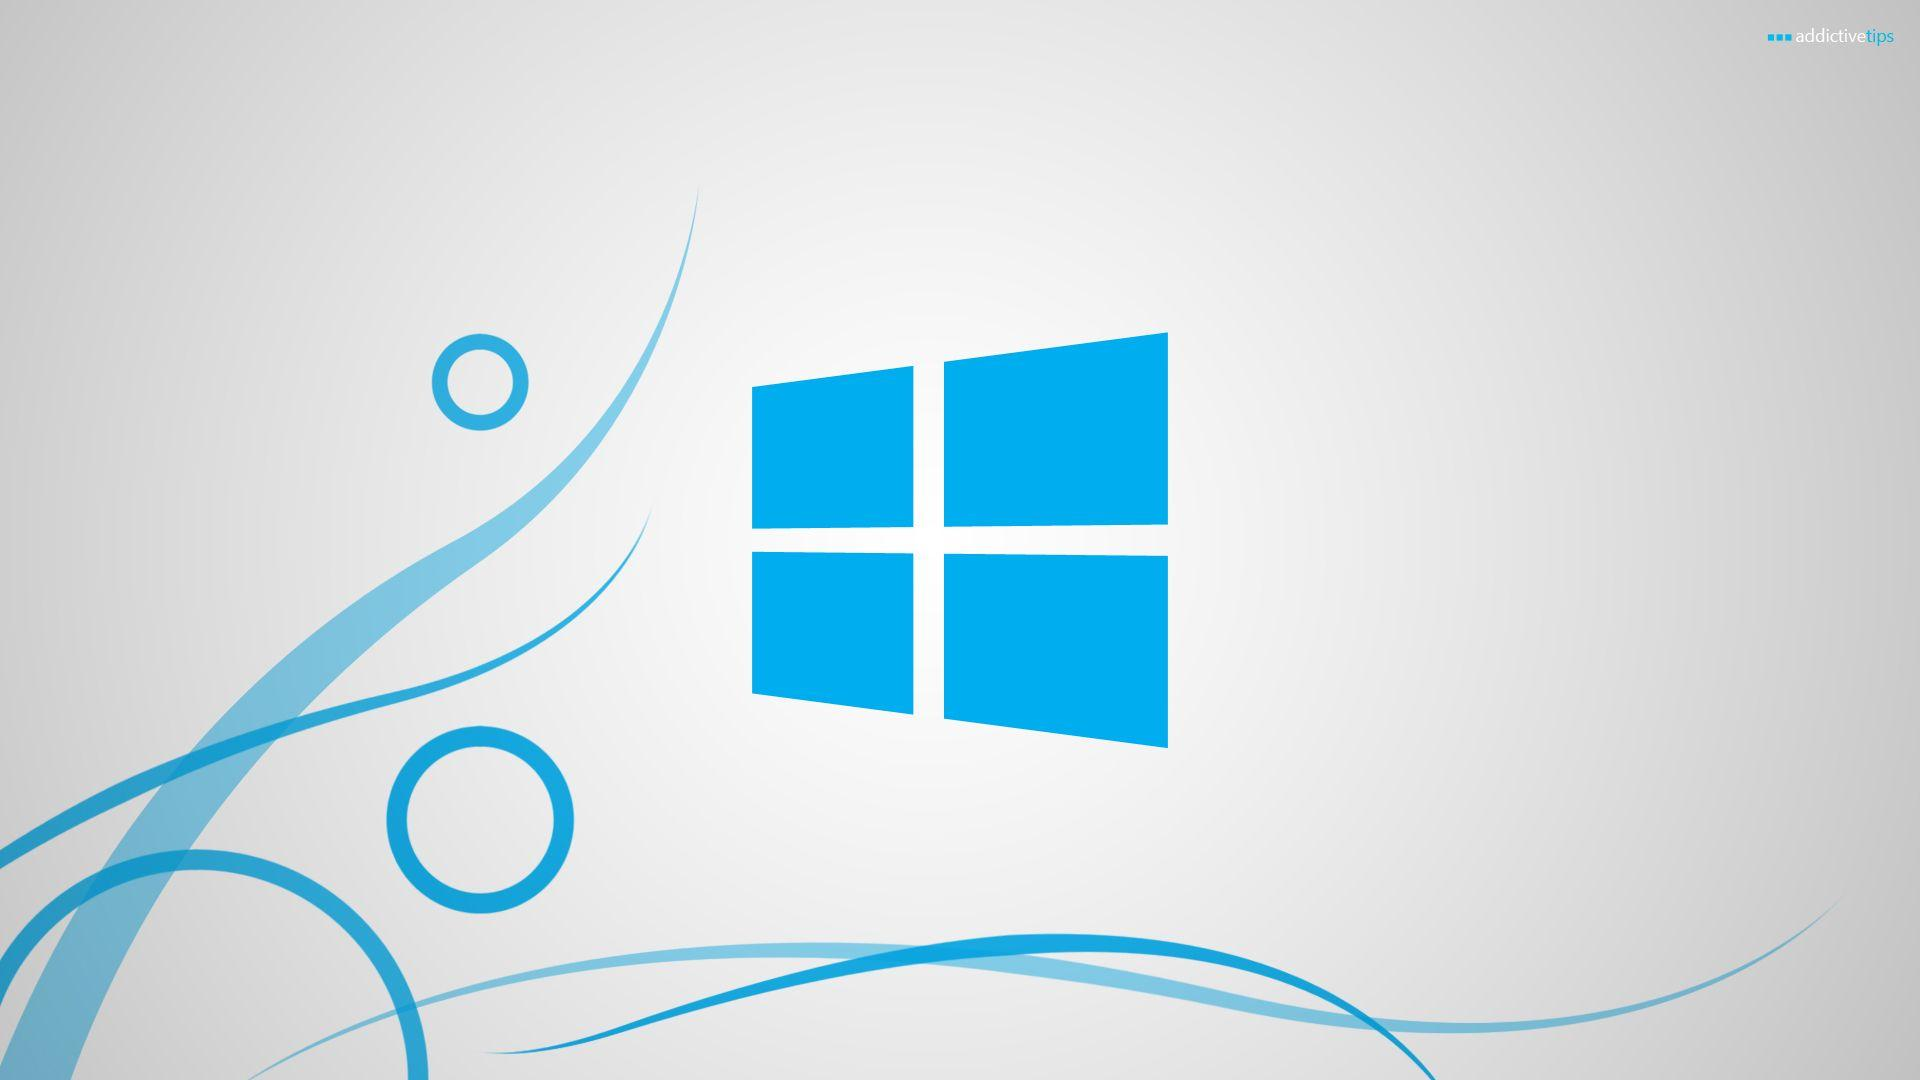 windows wallpaper 1920x1080 ws - photo #49